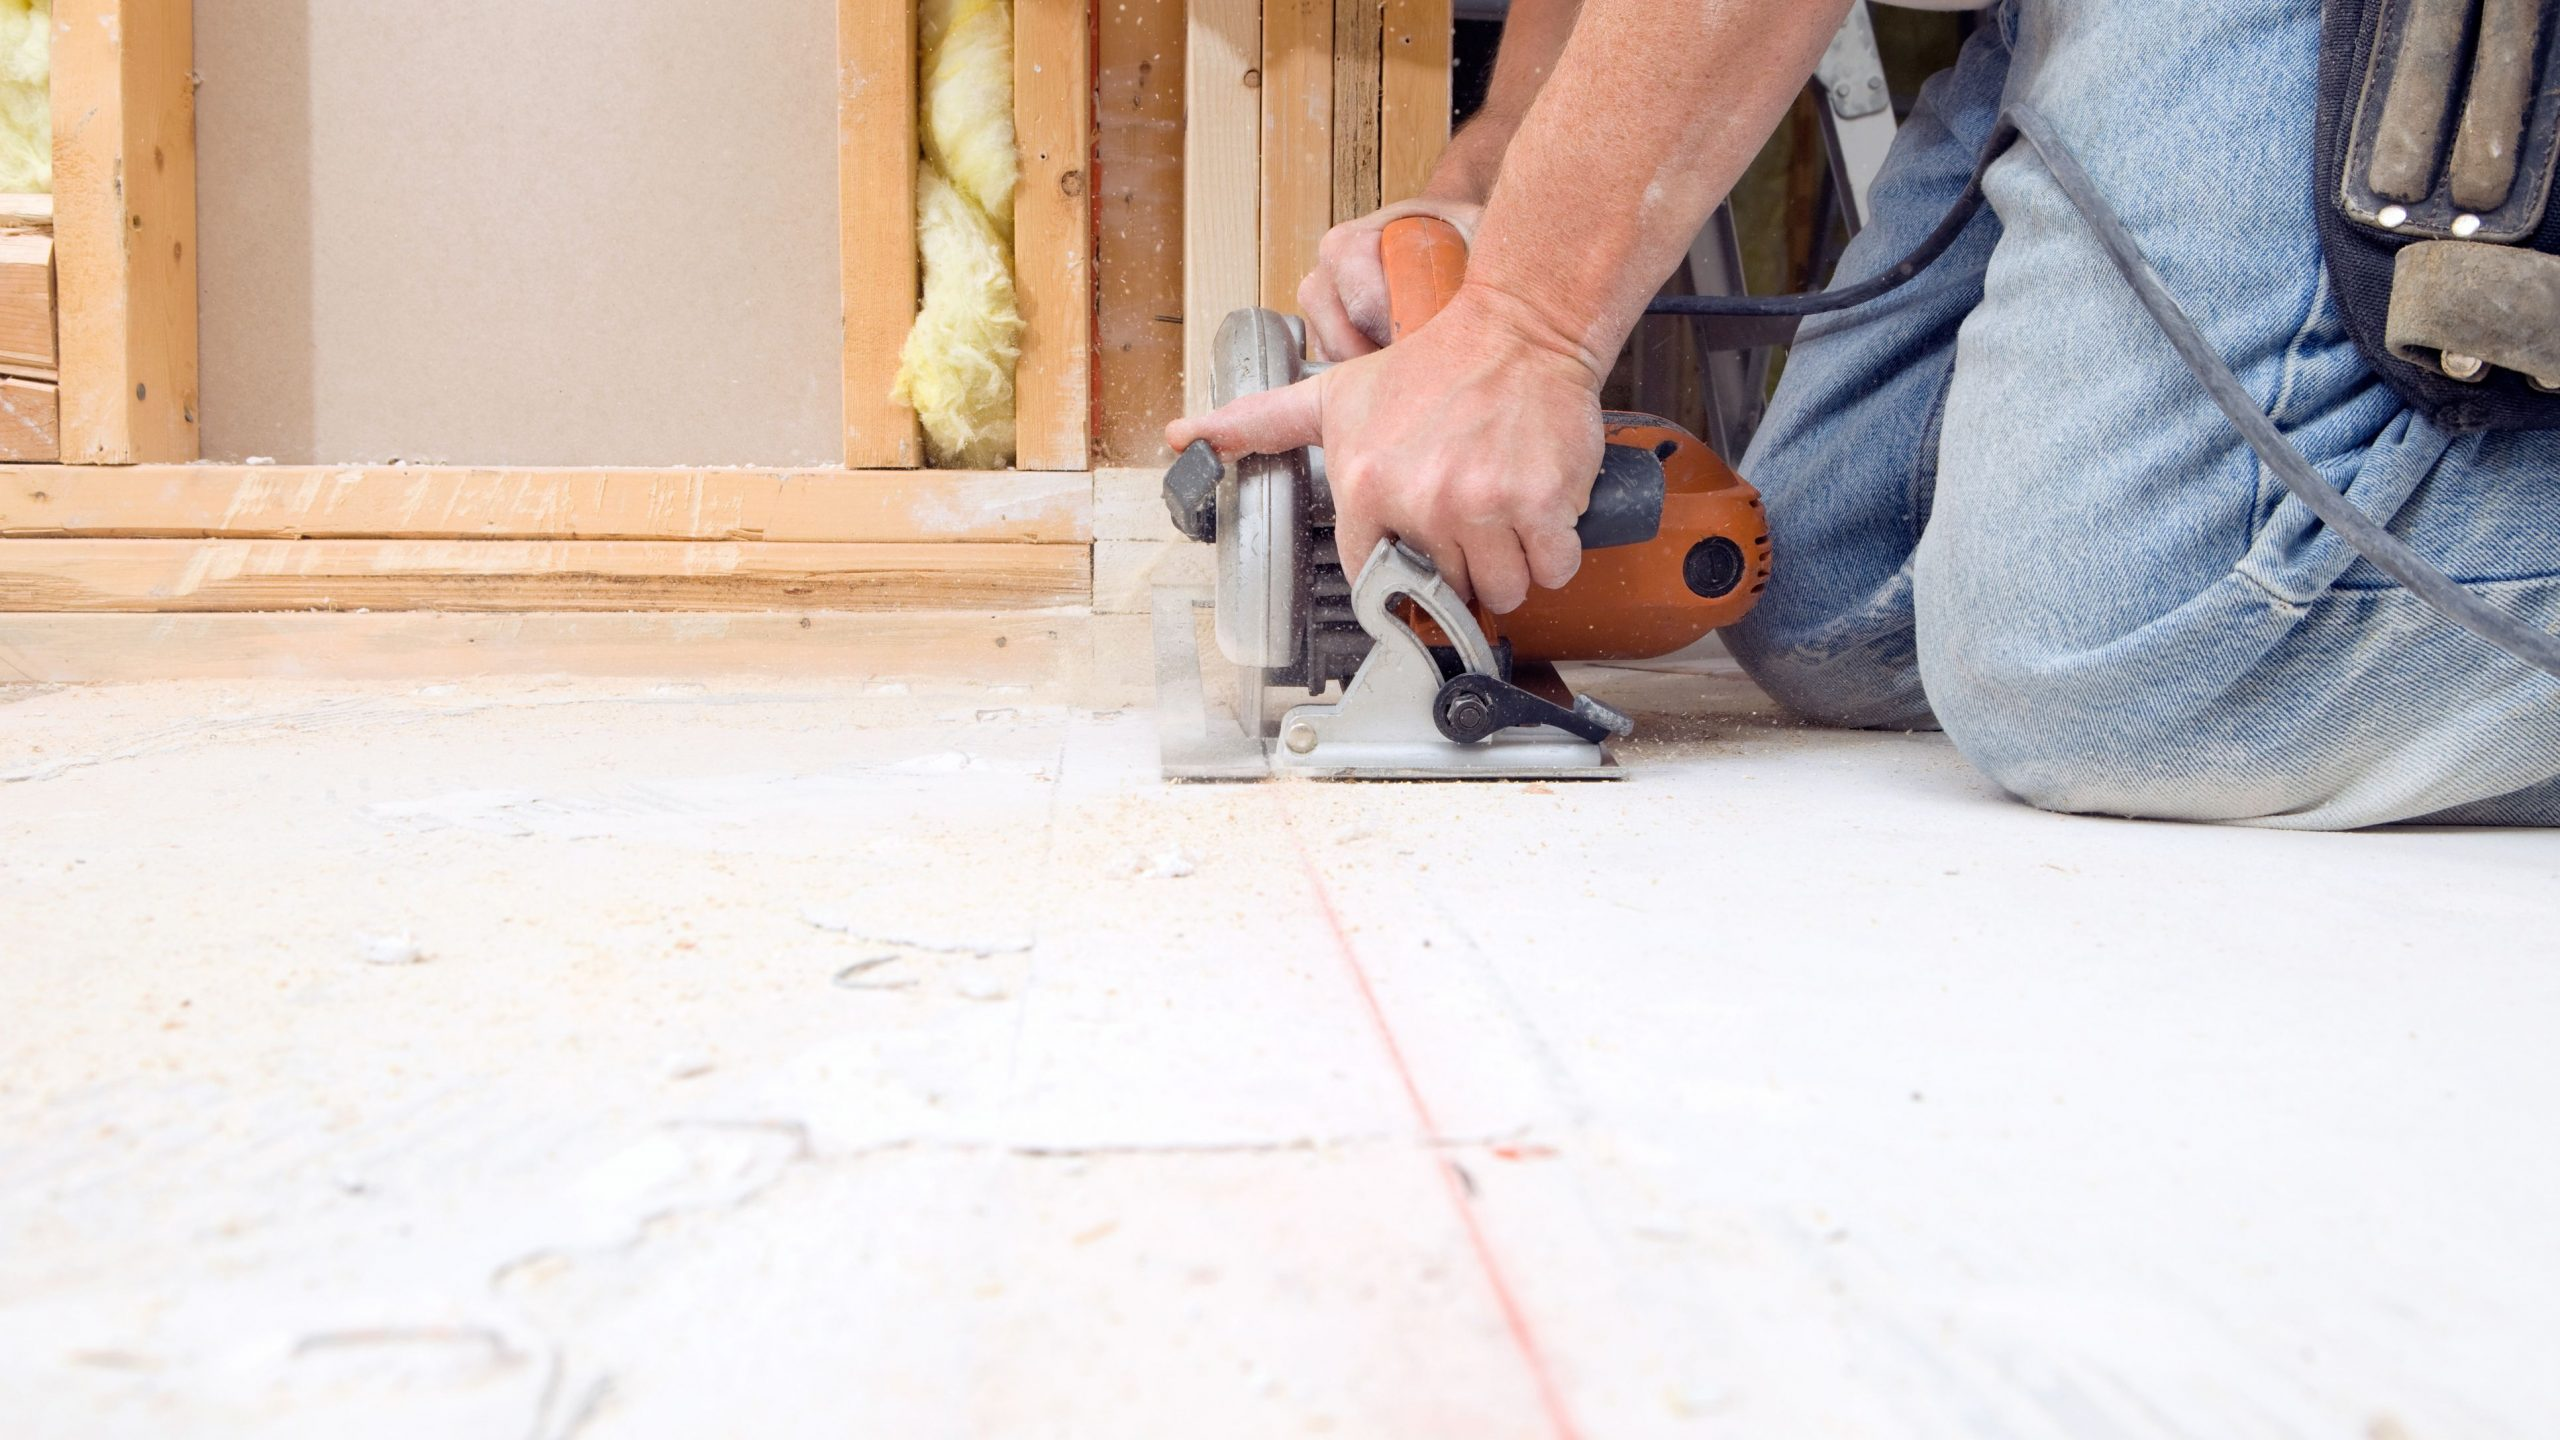 Concrete cutting is no easy task. It doesn't matter where in the world you do it or what concrete cutter you use. If you are going to be carrying out a concrete project on your own and without professional supervision, you can bet that you'd be in for quite a lot of work. This doesn't mean carrying out DIY concrete cutting is an impossible task, however. In fact, while we advise that you employ professionals for all concrete cutting Campbelltown projects, you can still get some minor tasks done yourself. Since guidance is still needed to get the job done right, below are some tips you need to know. Always use the right concrete cutter Concrete cutting is not a task to undertake with just any kind of tool. In fact, there are just as many concrete cutters available for concrete cutting tasks as there are different reasons for cutting concrete. Some cutters are designed specifically to make certain kinds of cuts or reach certain depths. Others are better suited for cutting specific materials. When carrying out DIY concrete cutting in Campbelltown, it is important to consult concrete cutting experts near you to find out what kind of concrete cutter would be better suited for the task at hand. Select the Right Blade for the Job When carrying out concrete cutting, you not only need to get the right concrete cutter but also the right blade for the job. Depending on the material to be cut, the kind of blade to be used would vary, even if you would be using the same cutter. Take for example you are looking to cut a number of blocks. For a concrete cutting project like that, you could simply use a regular concrete cutting blade. When cutting much harder materials like asphalt or rocks though, diamond-tipped blades are the more appropriate blades for the job. Mark before Making Cuts One mistake people make often during concrete cutting in Campbelltown is to make cuts without first marking where the cuts should be made. Do not be one of these people. Before beginning your concr